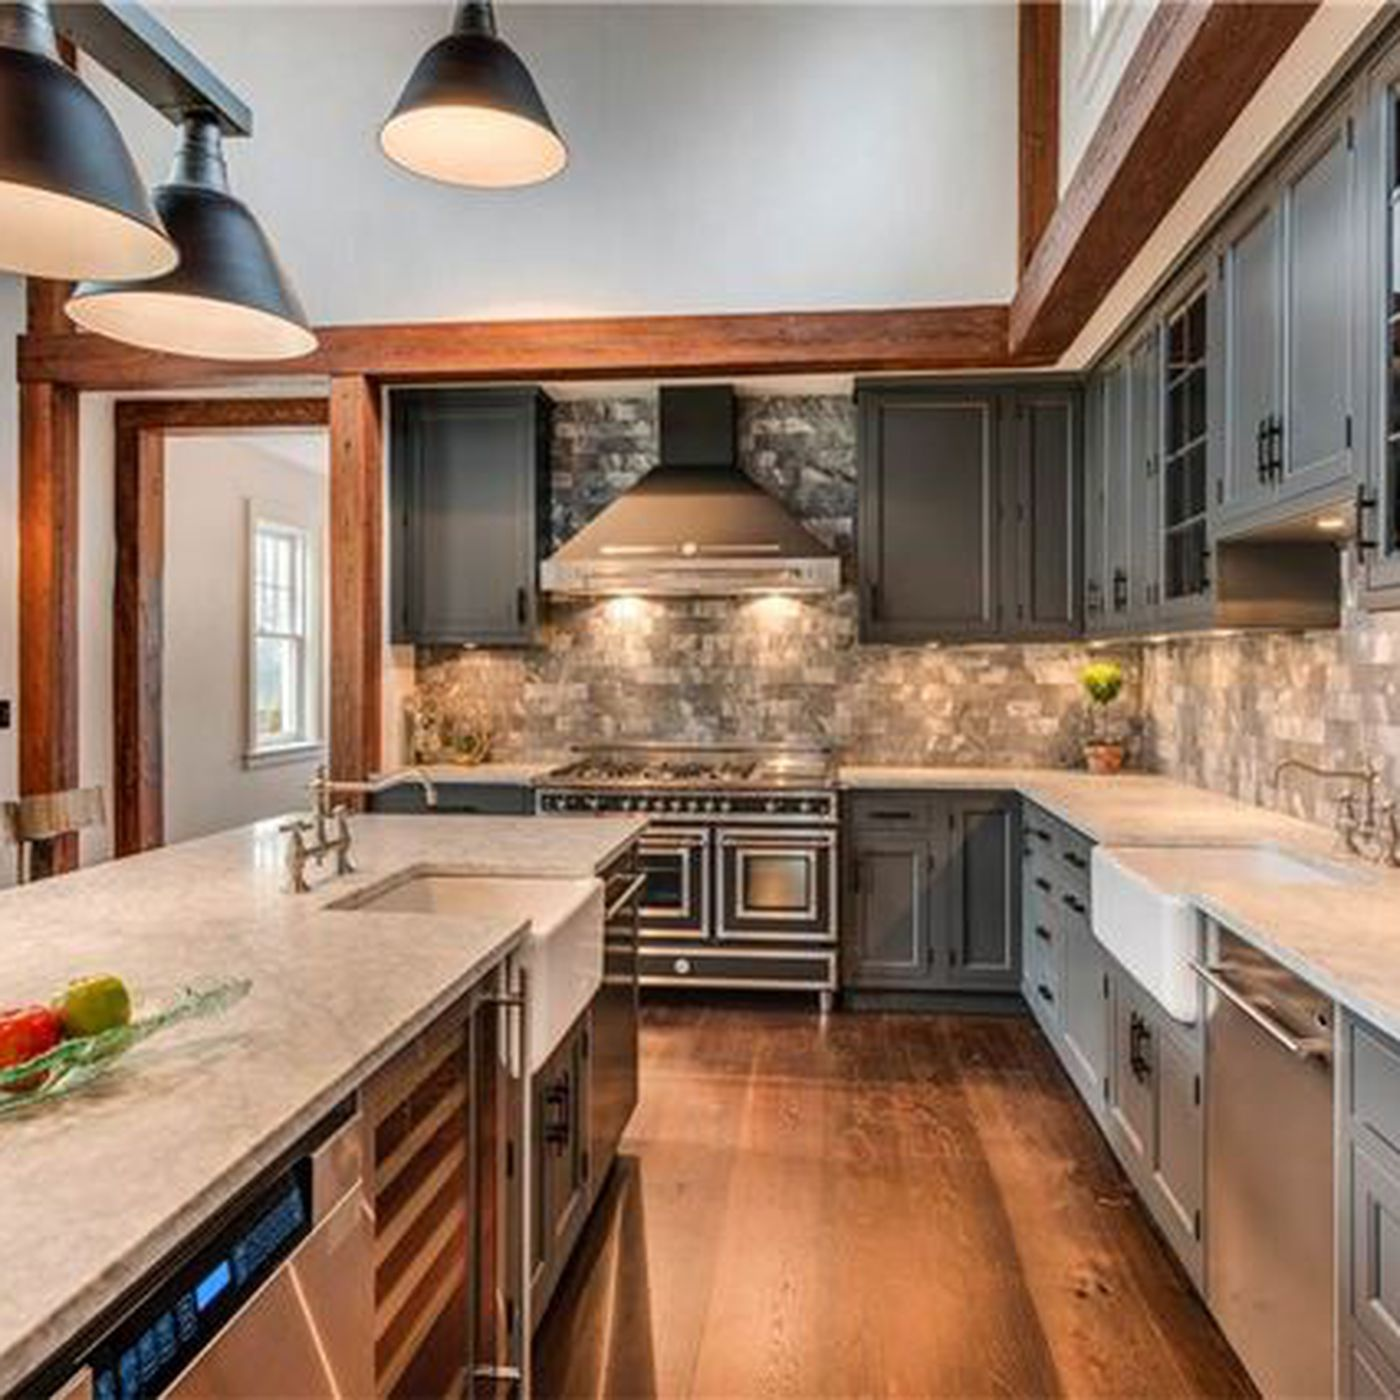 5 gorgeous kitchens in hamptons homes for sale